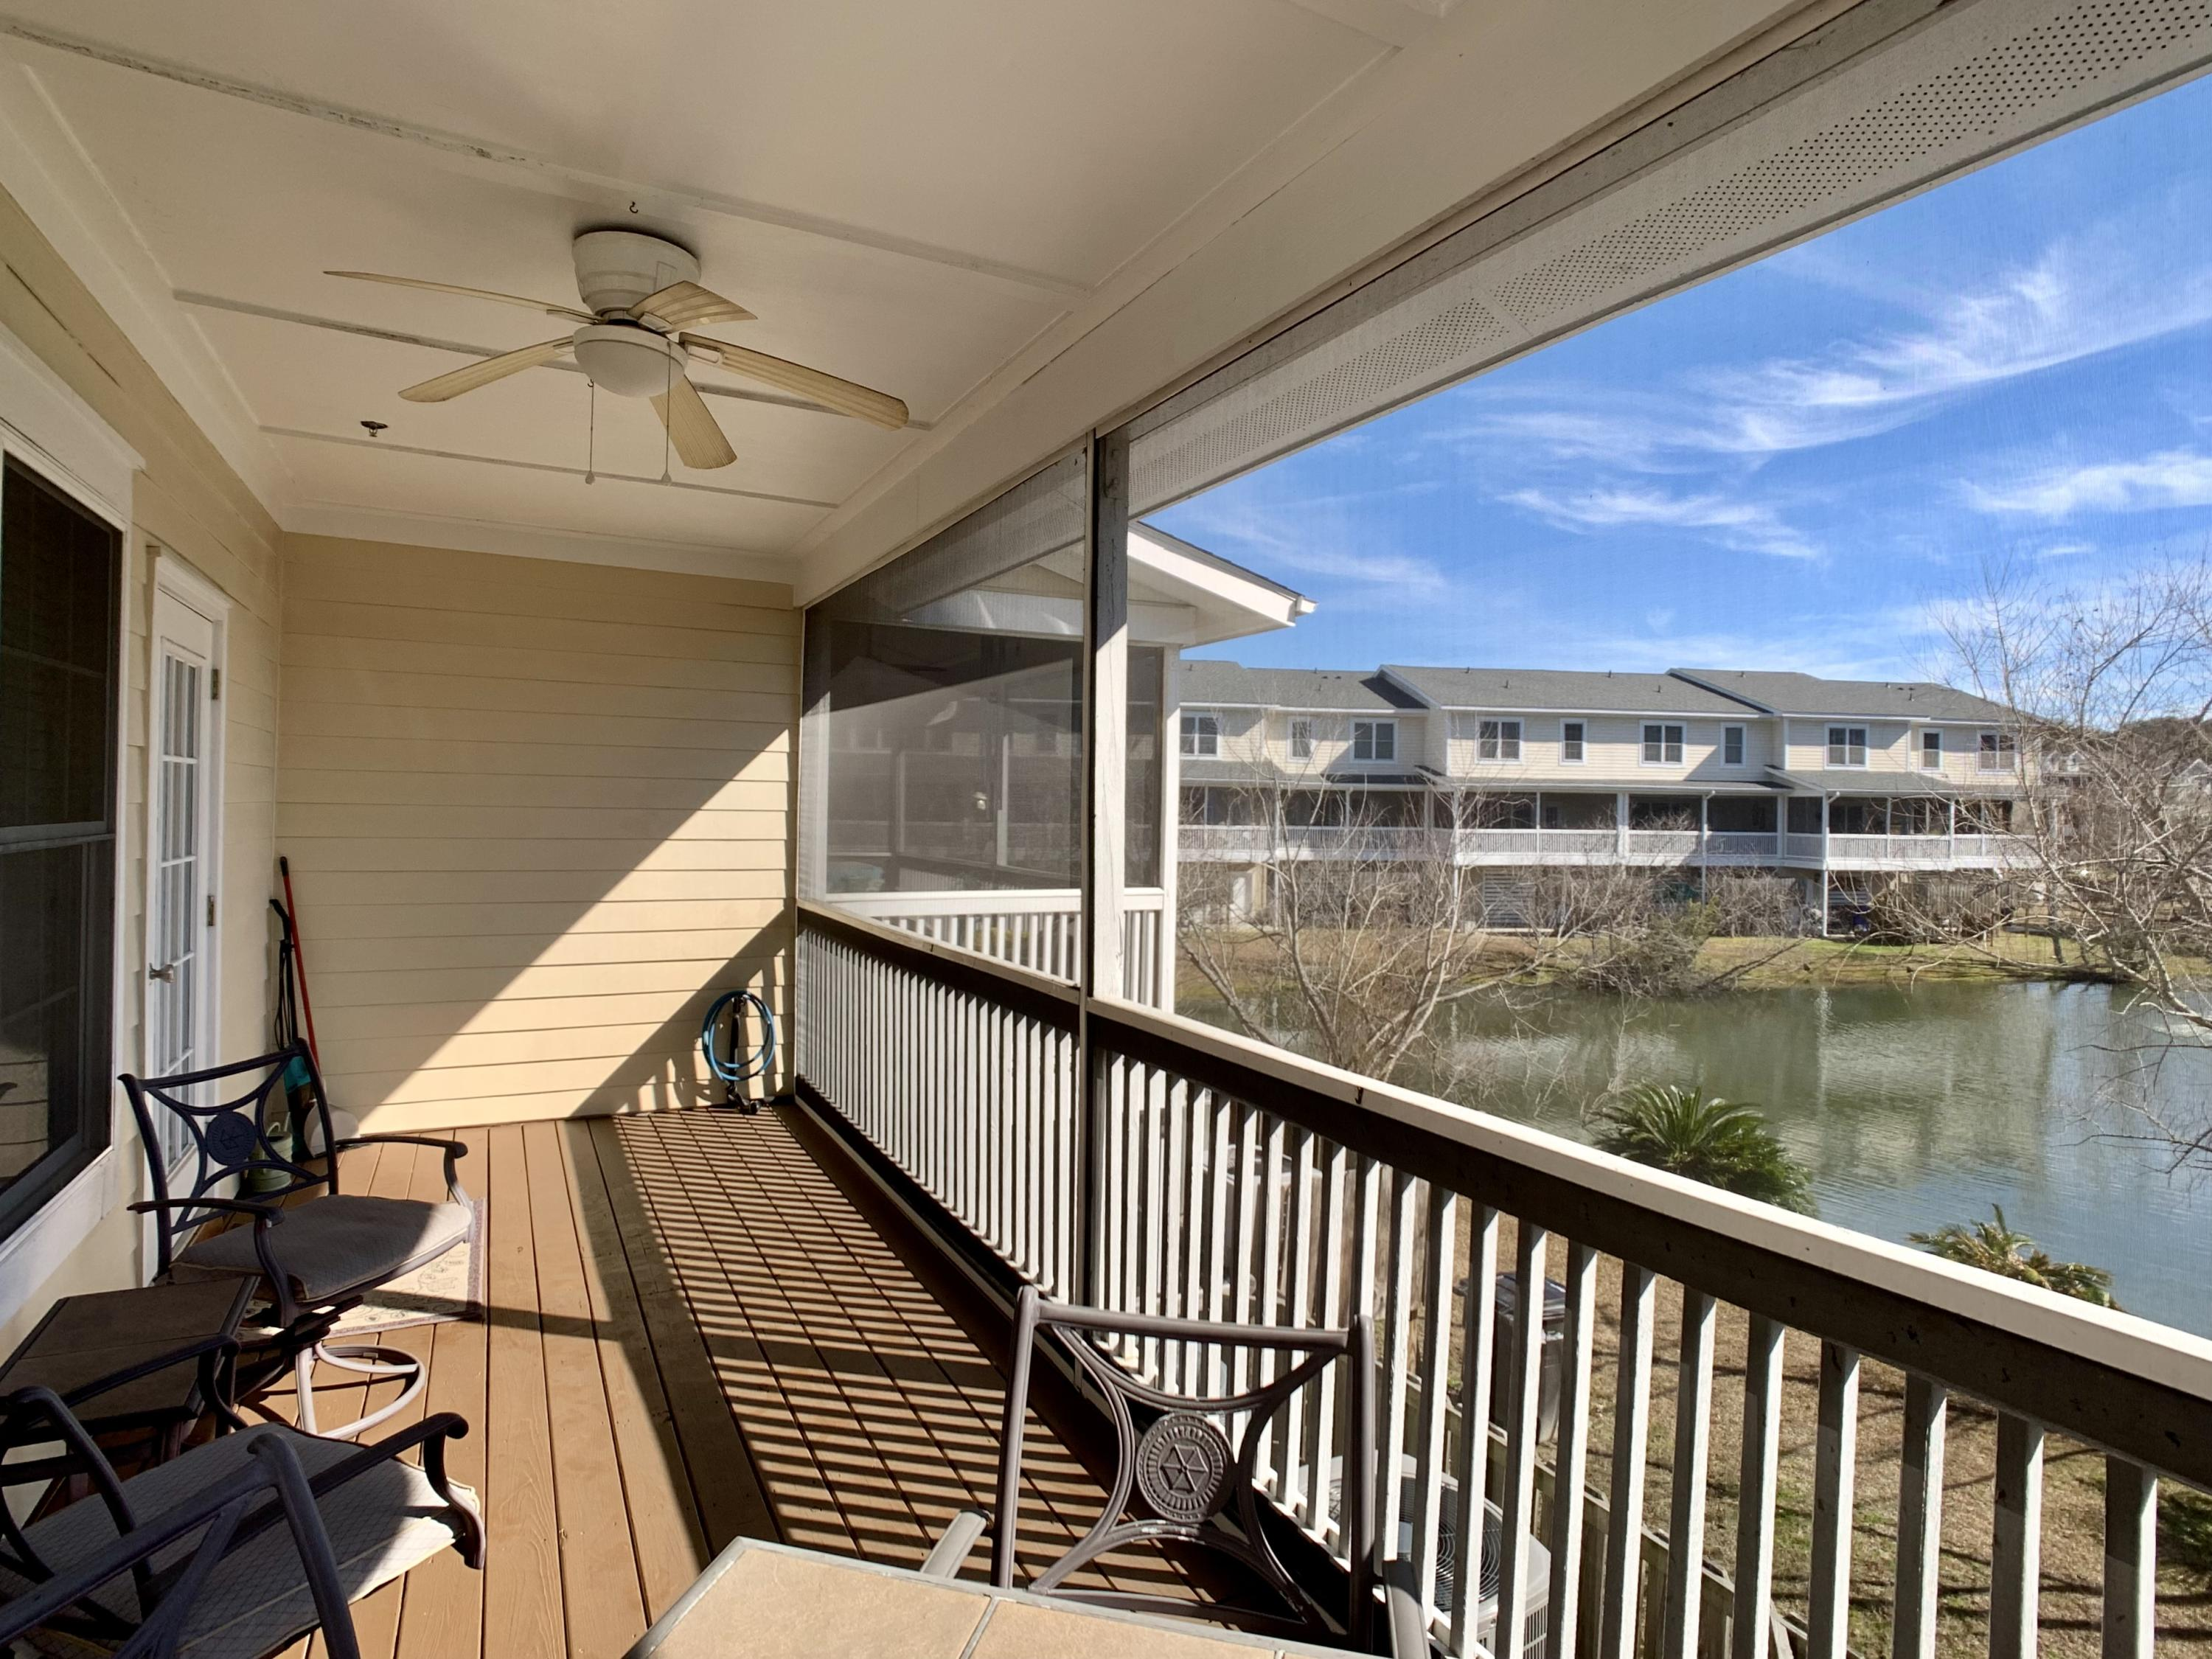 Etiwan Pointe Homes For Sale - 128 Summers Creek, Mount Pleasant, SC - 0